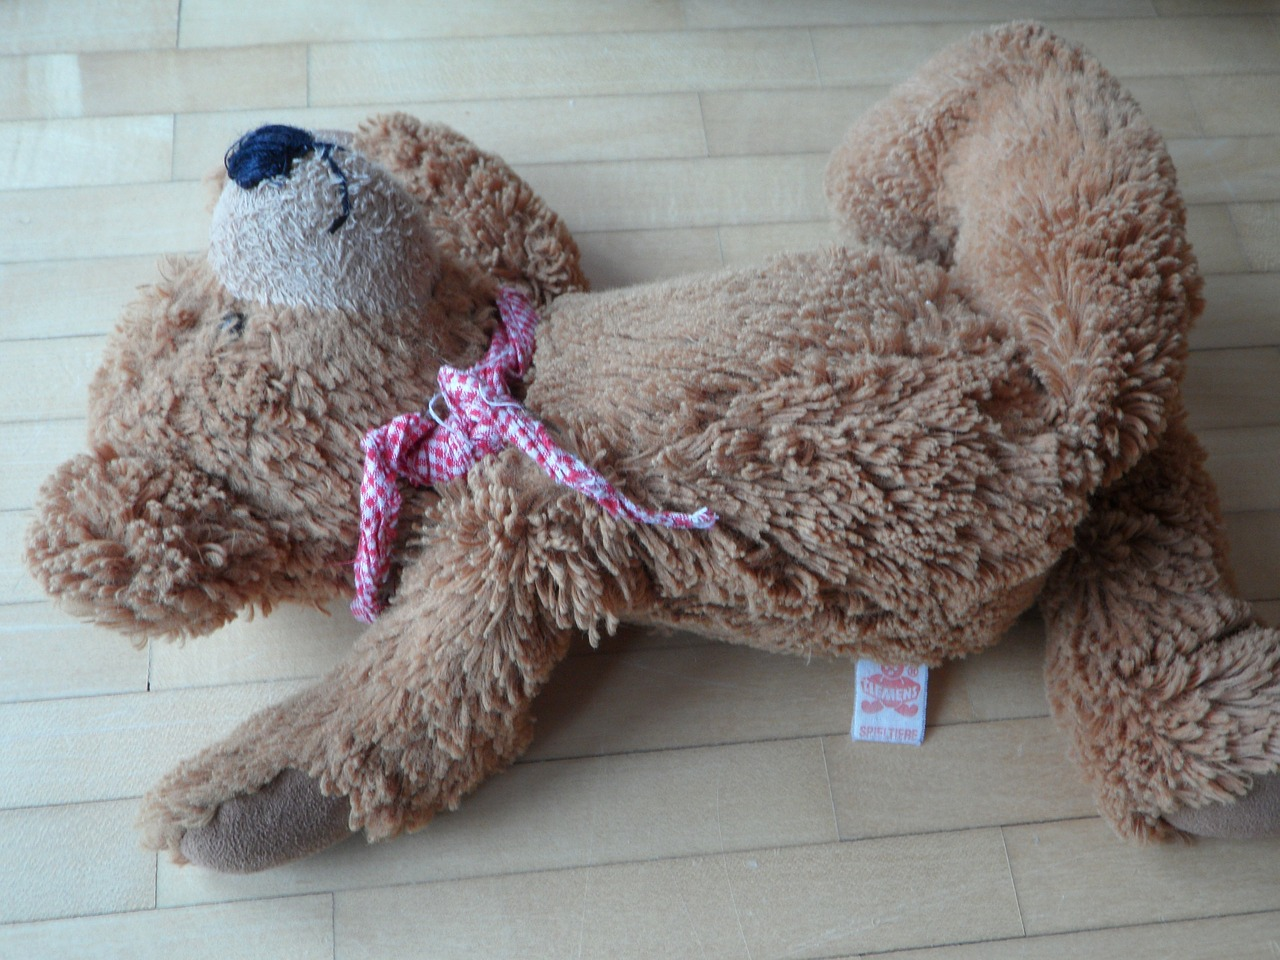 teddy careless thrown away free photo